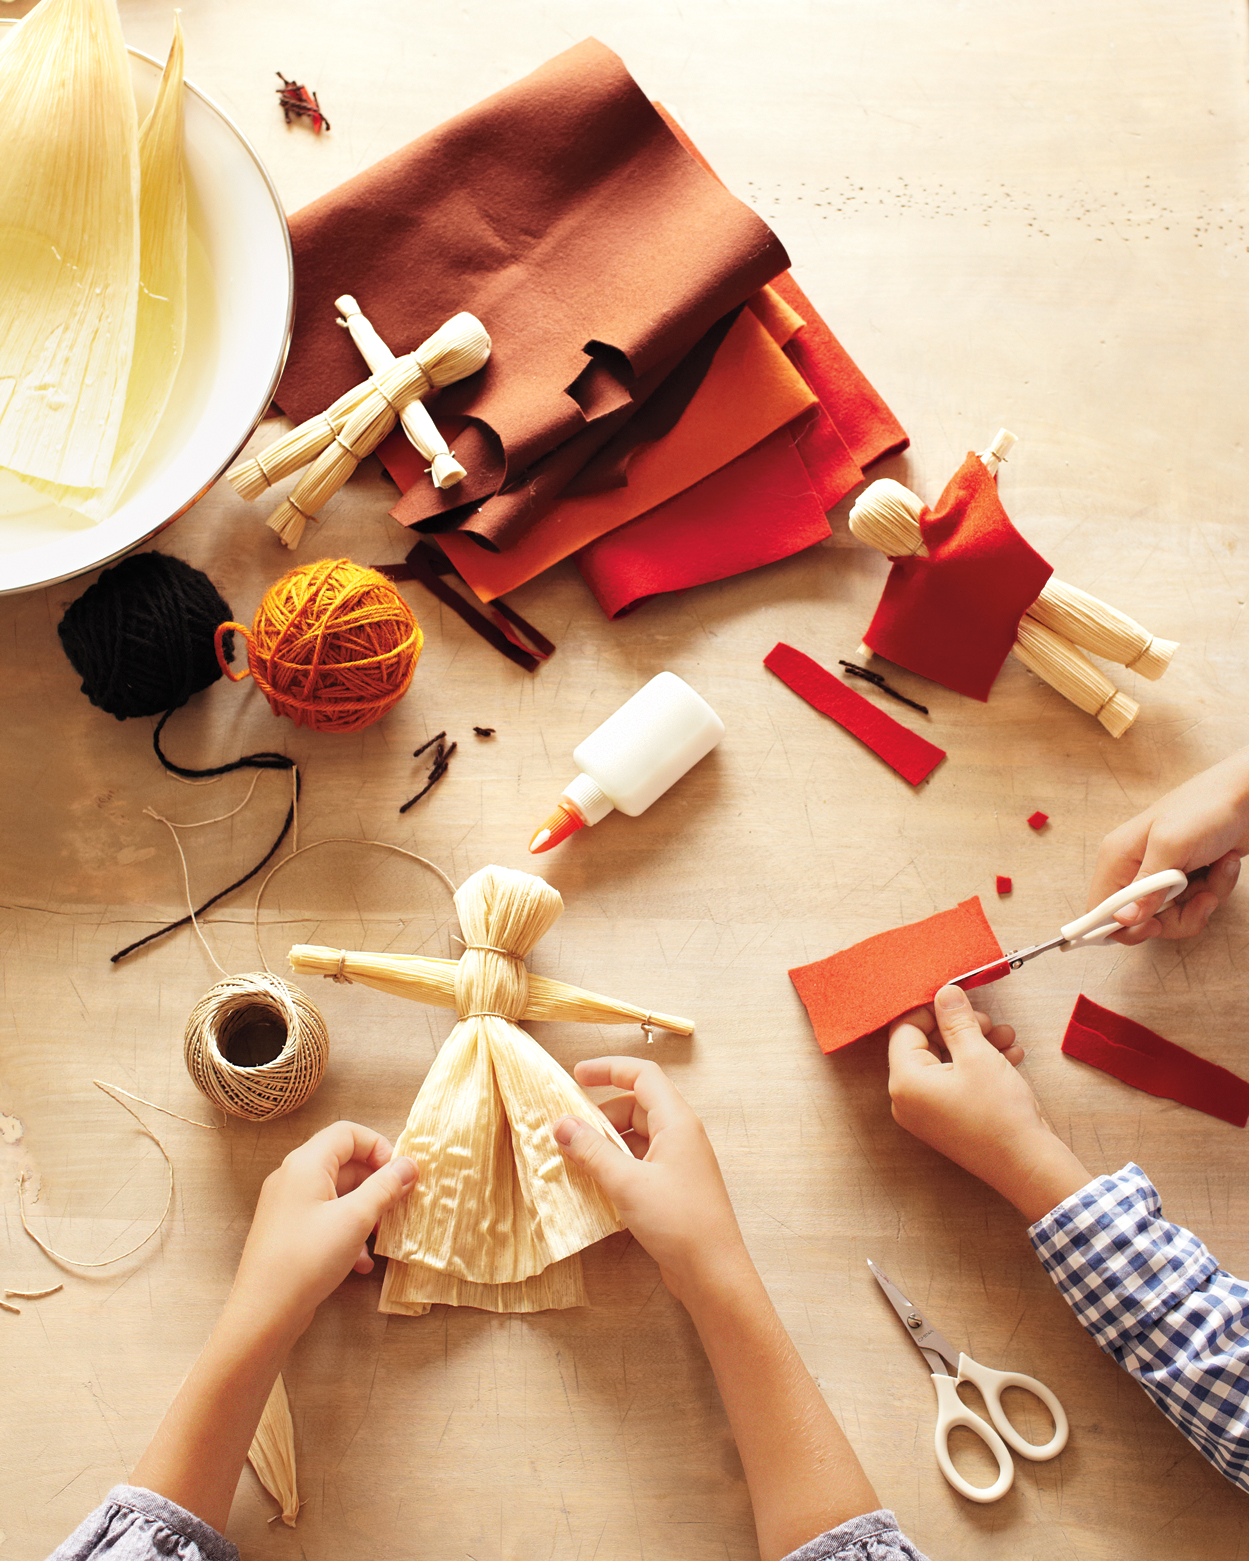 kids crafting cornhusk dolls for Thanksgiving